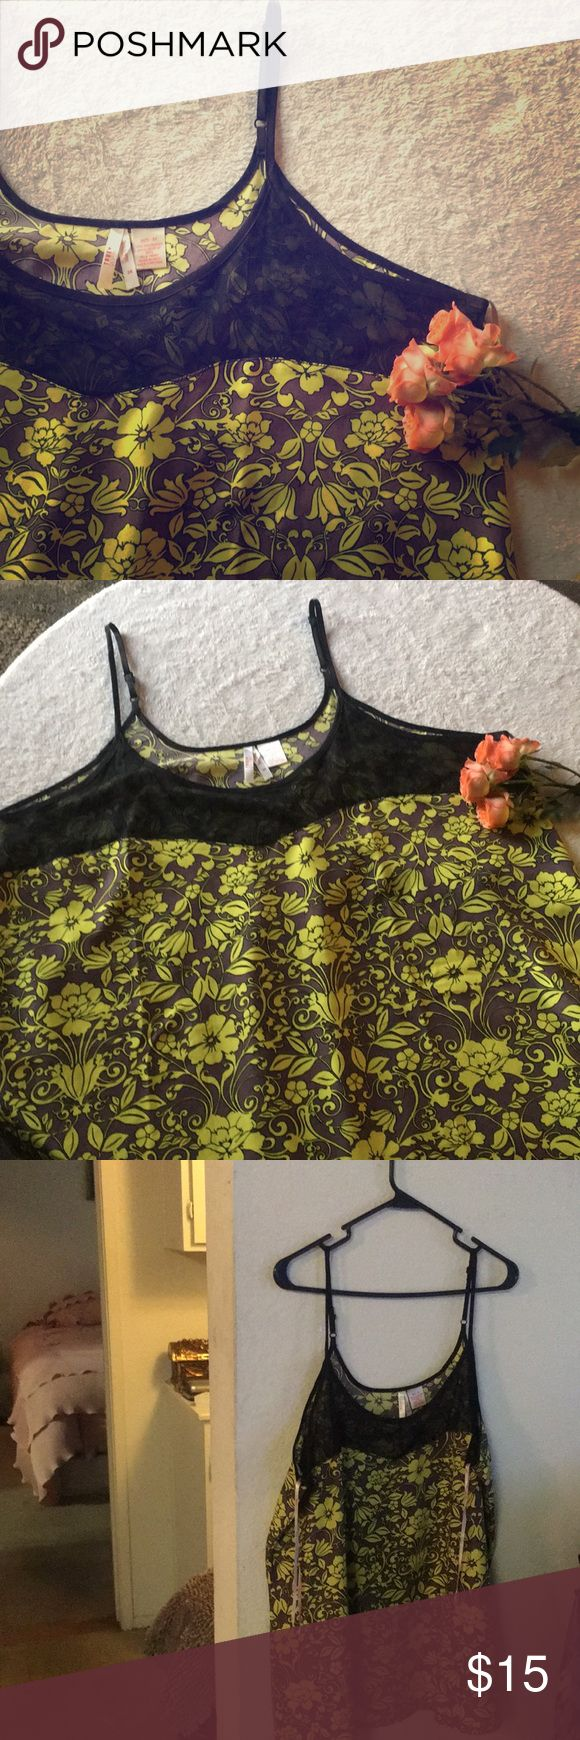 """NWOT Sexy Floral Print + Mesh Camisole Two left .. 1X & 2X. Mixing neutrals with a pop of shocking neon has been fashionable since the early 1950's... a style envisioned and executed by Christian Dior... originally known as the """"shocking pink"""" trend. In the later half of 2017 and again for spring and summer 2018 """"neon pops"""" have been sexied up and cooled down. I love the black mesh on this shirt because it adds an element of mysterious fashionista. Let me know if you have any questions True…"""